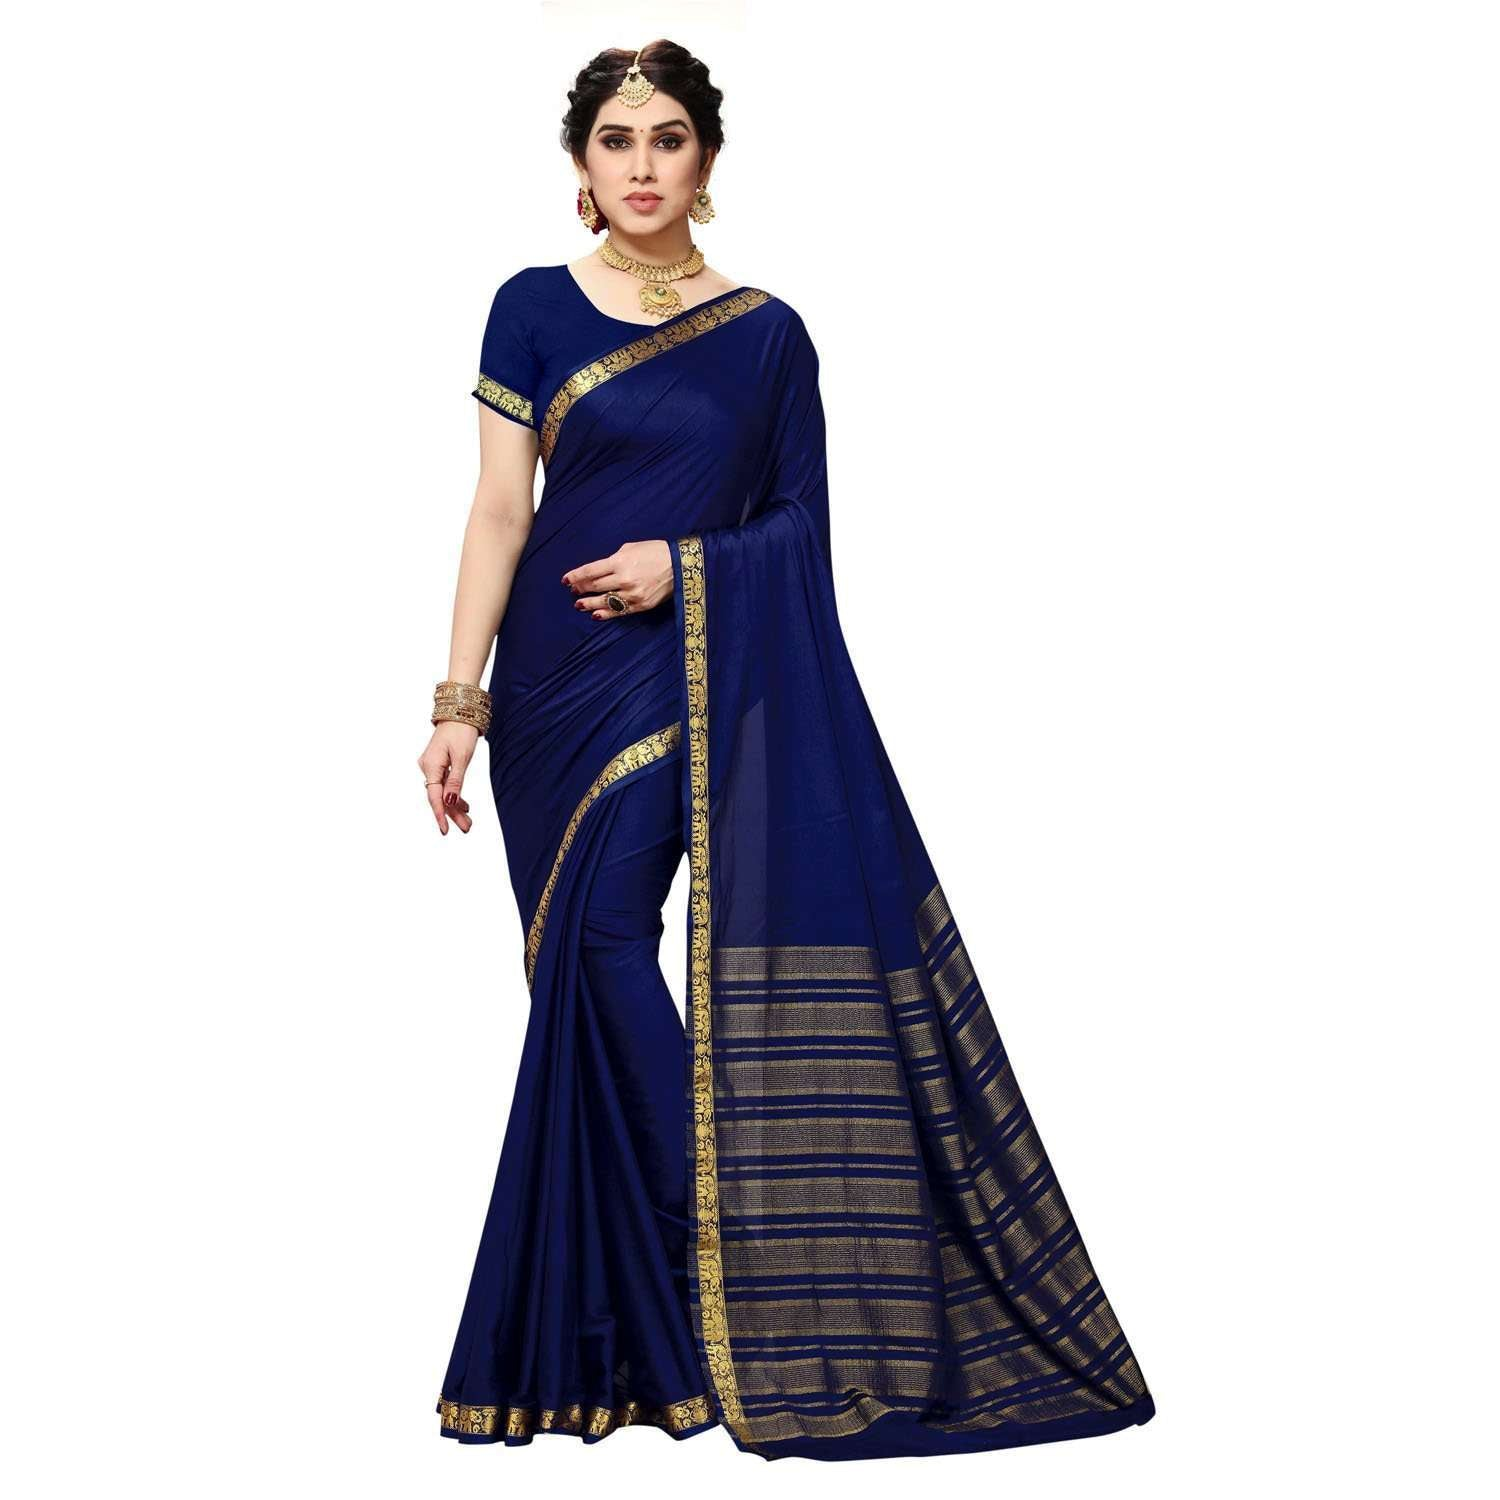 arars Women's Kanchipuram Pattu crepe plain Silk Saree With Blouse (513_navy&navy )